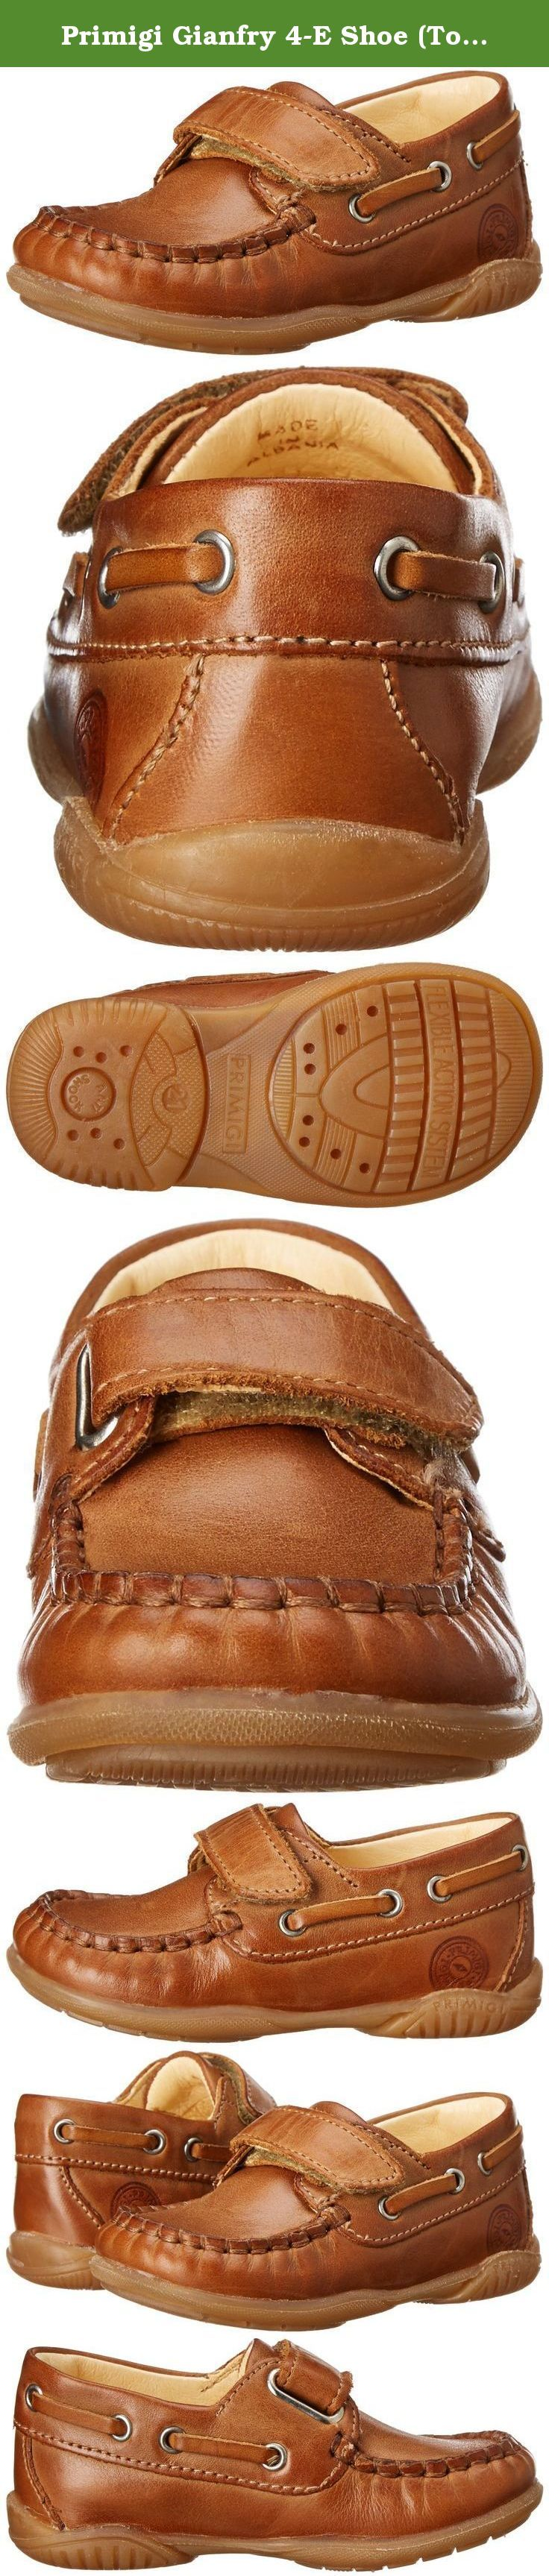 Primigi Gianfry 4-E Shoe (Toddler),Brown,22 EU(5.5 M US Toddler). Gianfry 4-E is a boat shoe with a single Velcro® strap for the stylish toddler.